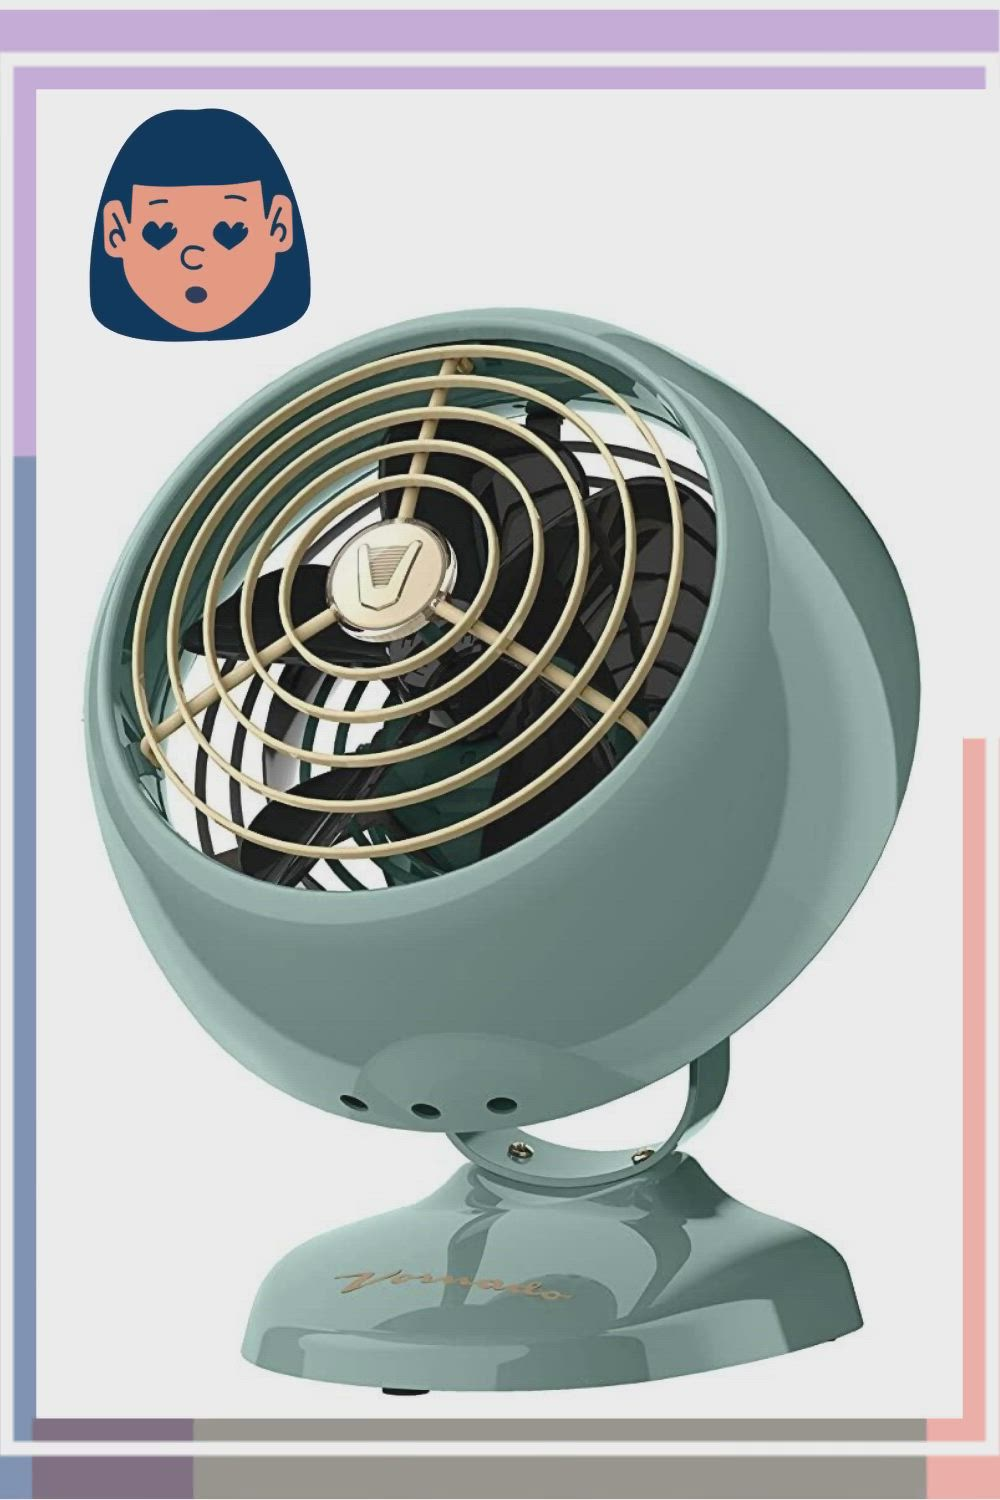 Tabletop Air Conditioning Unit